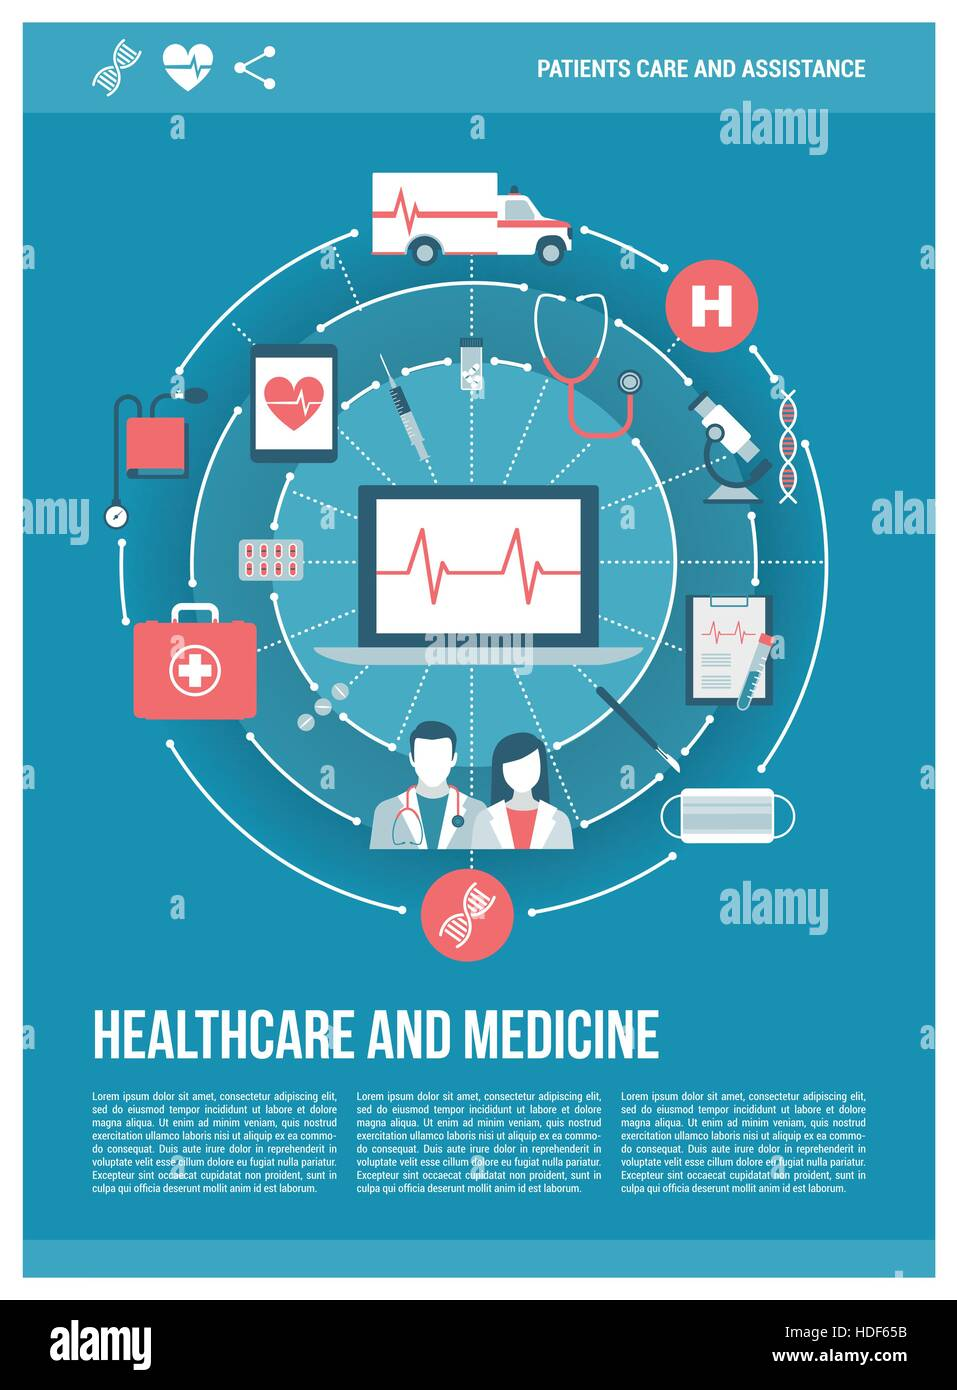 Healthcare, doctors, hospital and emergency concepts on a